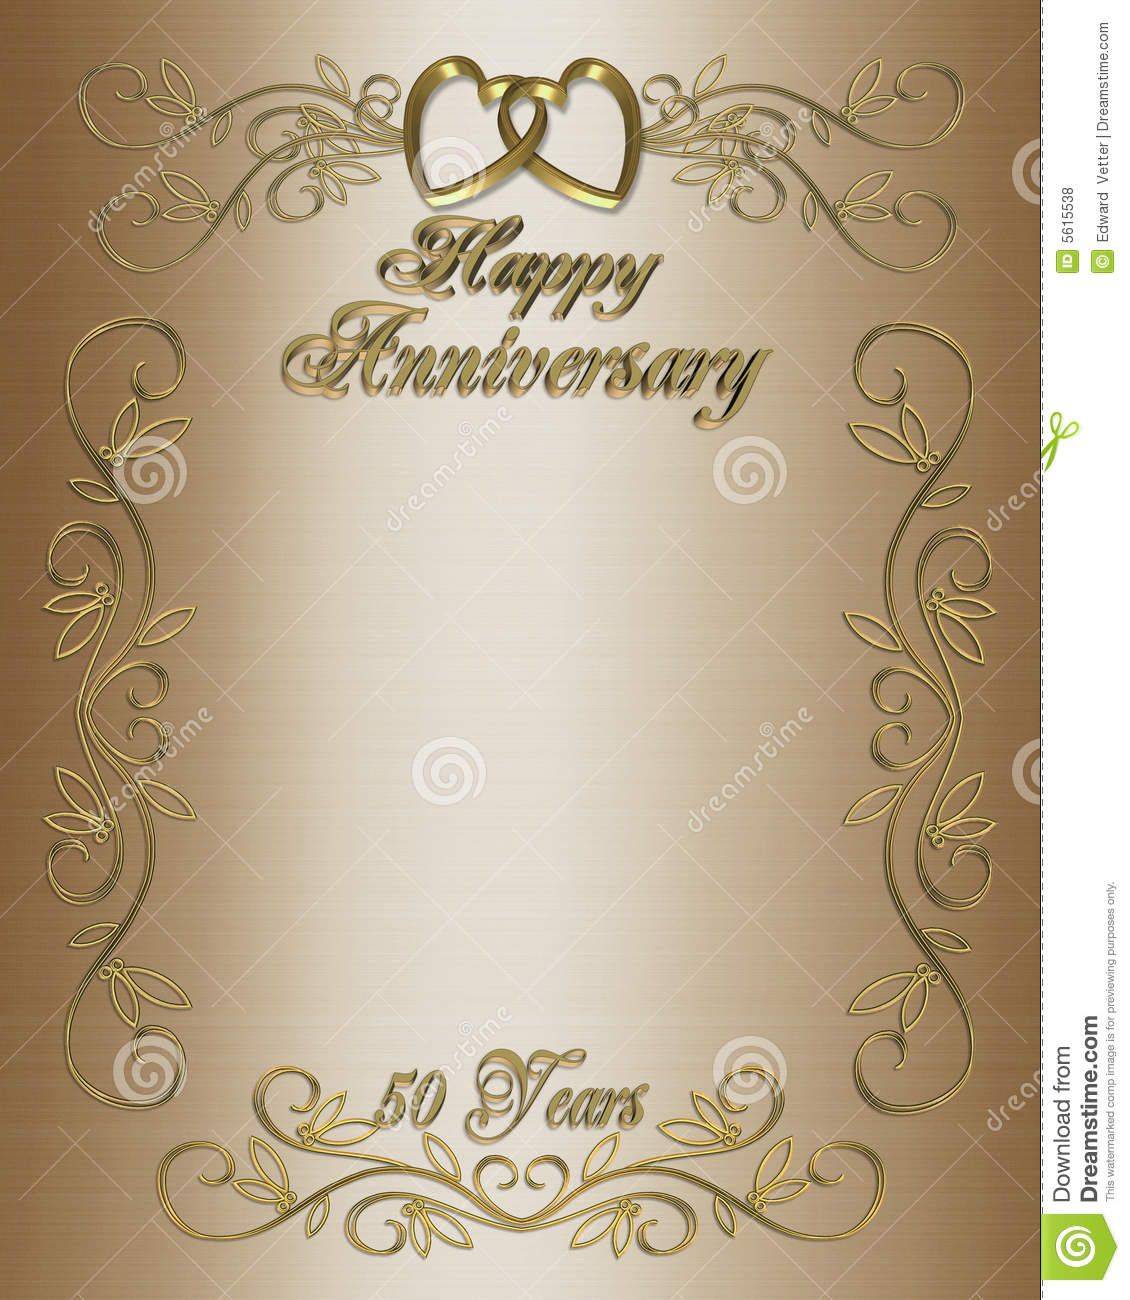 002 Magnificent 50th Anniversary Invitation Template Free Download Highest Quality  Golden WeddingFull